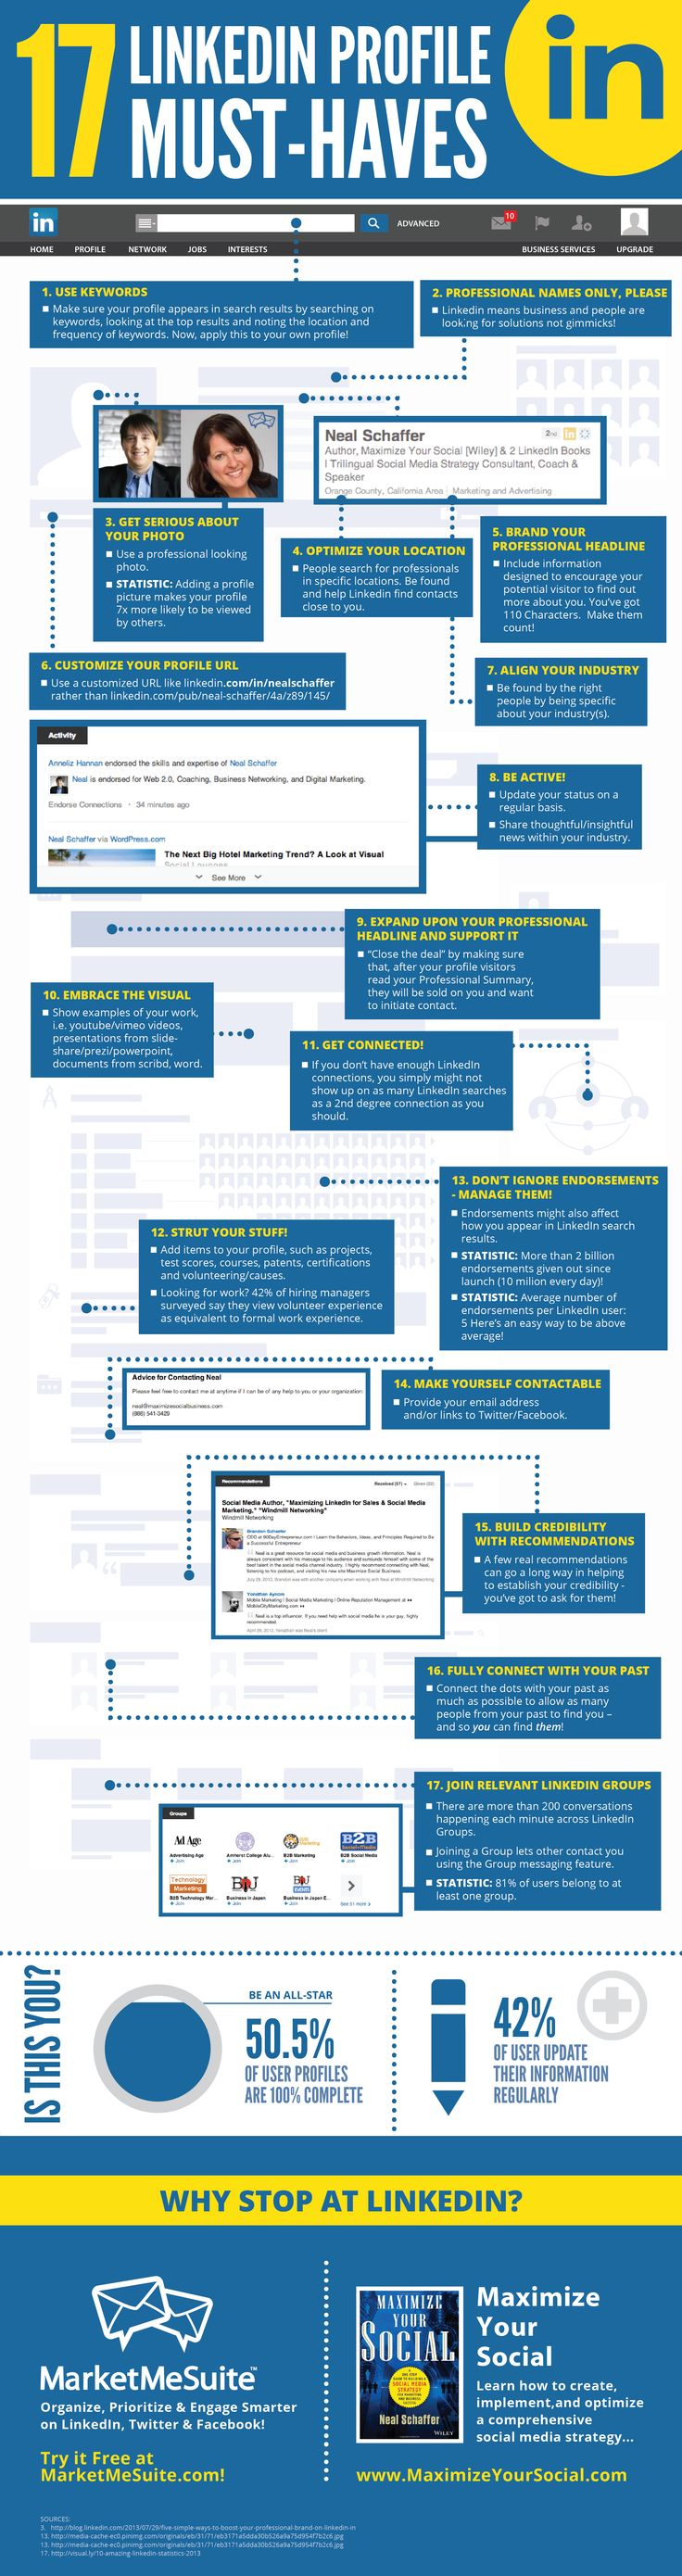 #LinkedIn Must-Haves for Your Profile #SocialMedia | TSG Social Media Tips | Pinterest | Infographic, Profile and Business